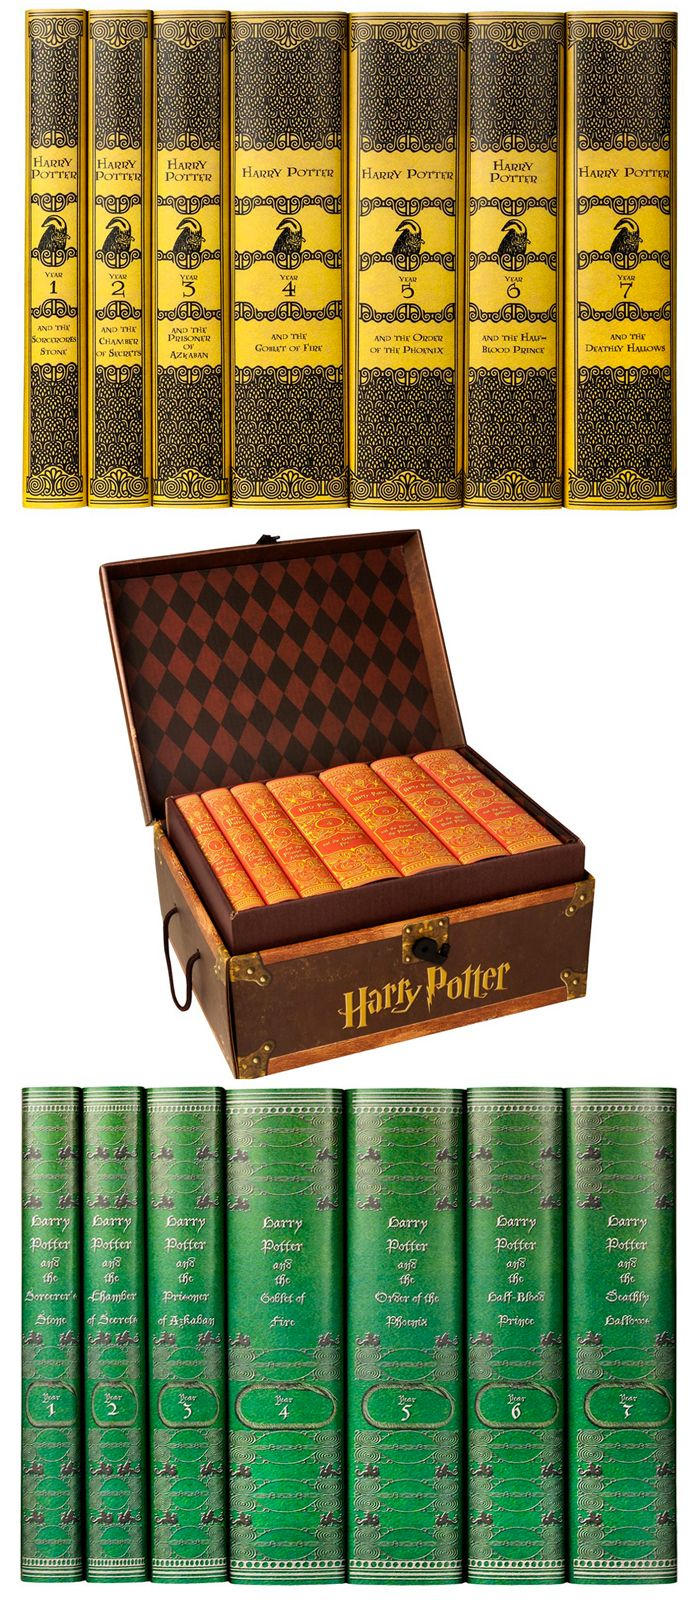 Harry Potter Book Sets Decorated In Hogwarts Houses Are Remarkably Beautiful Harry Potter Book Set Harry Potter Books Series Harry Potter Collection